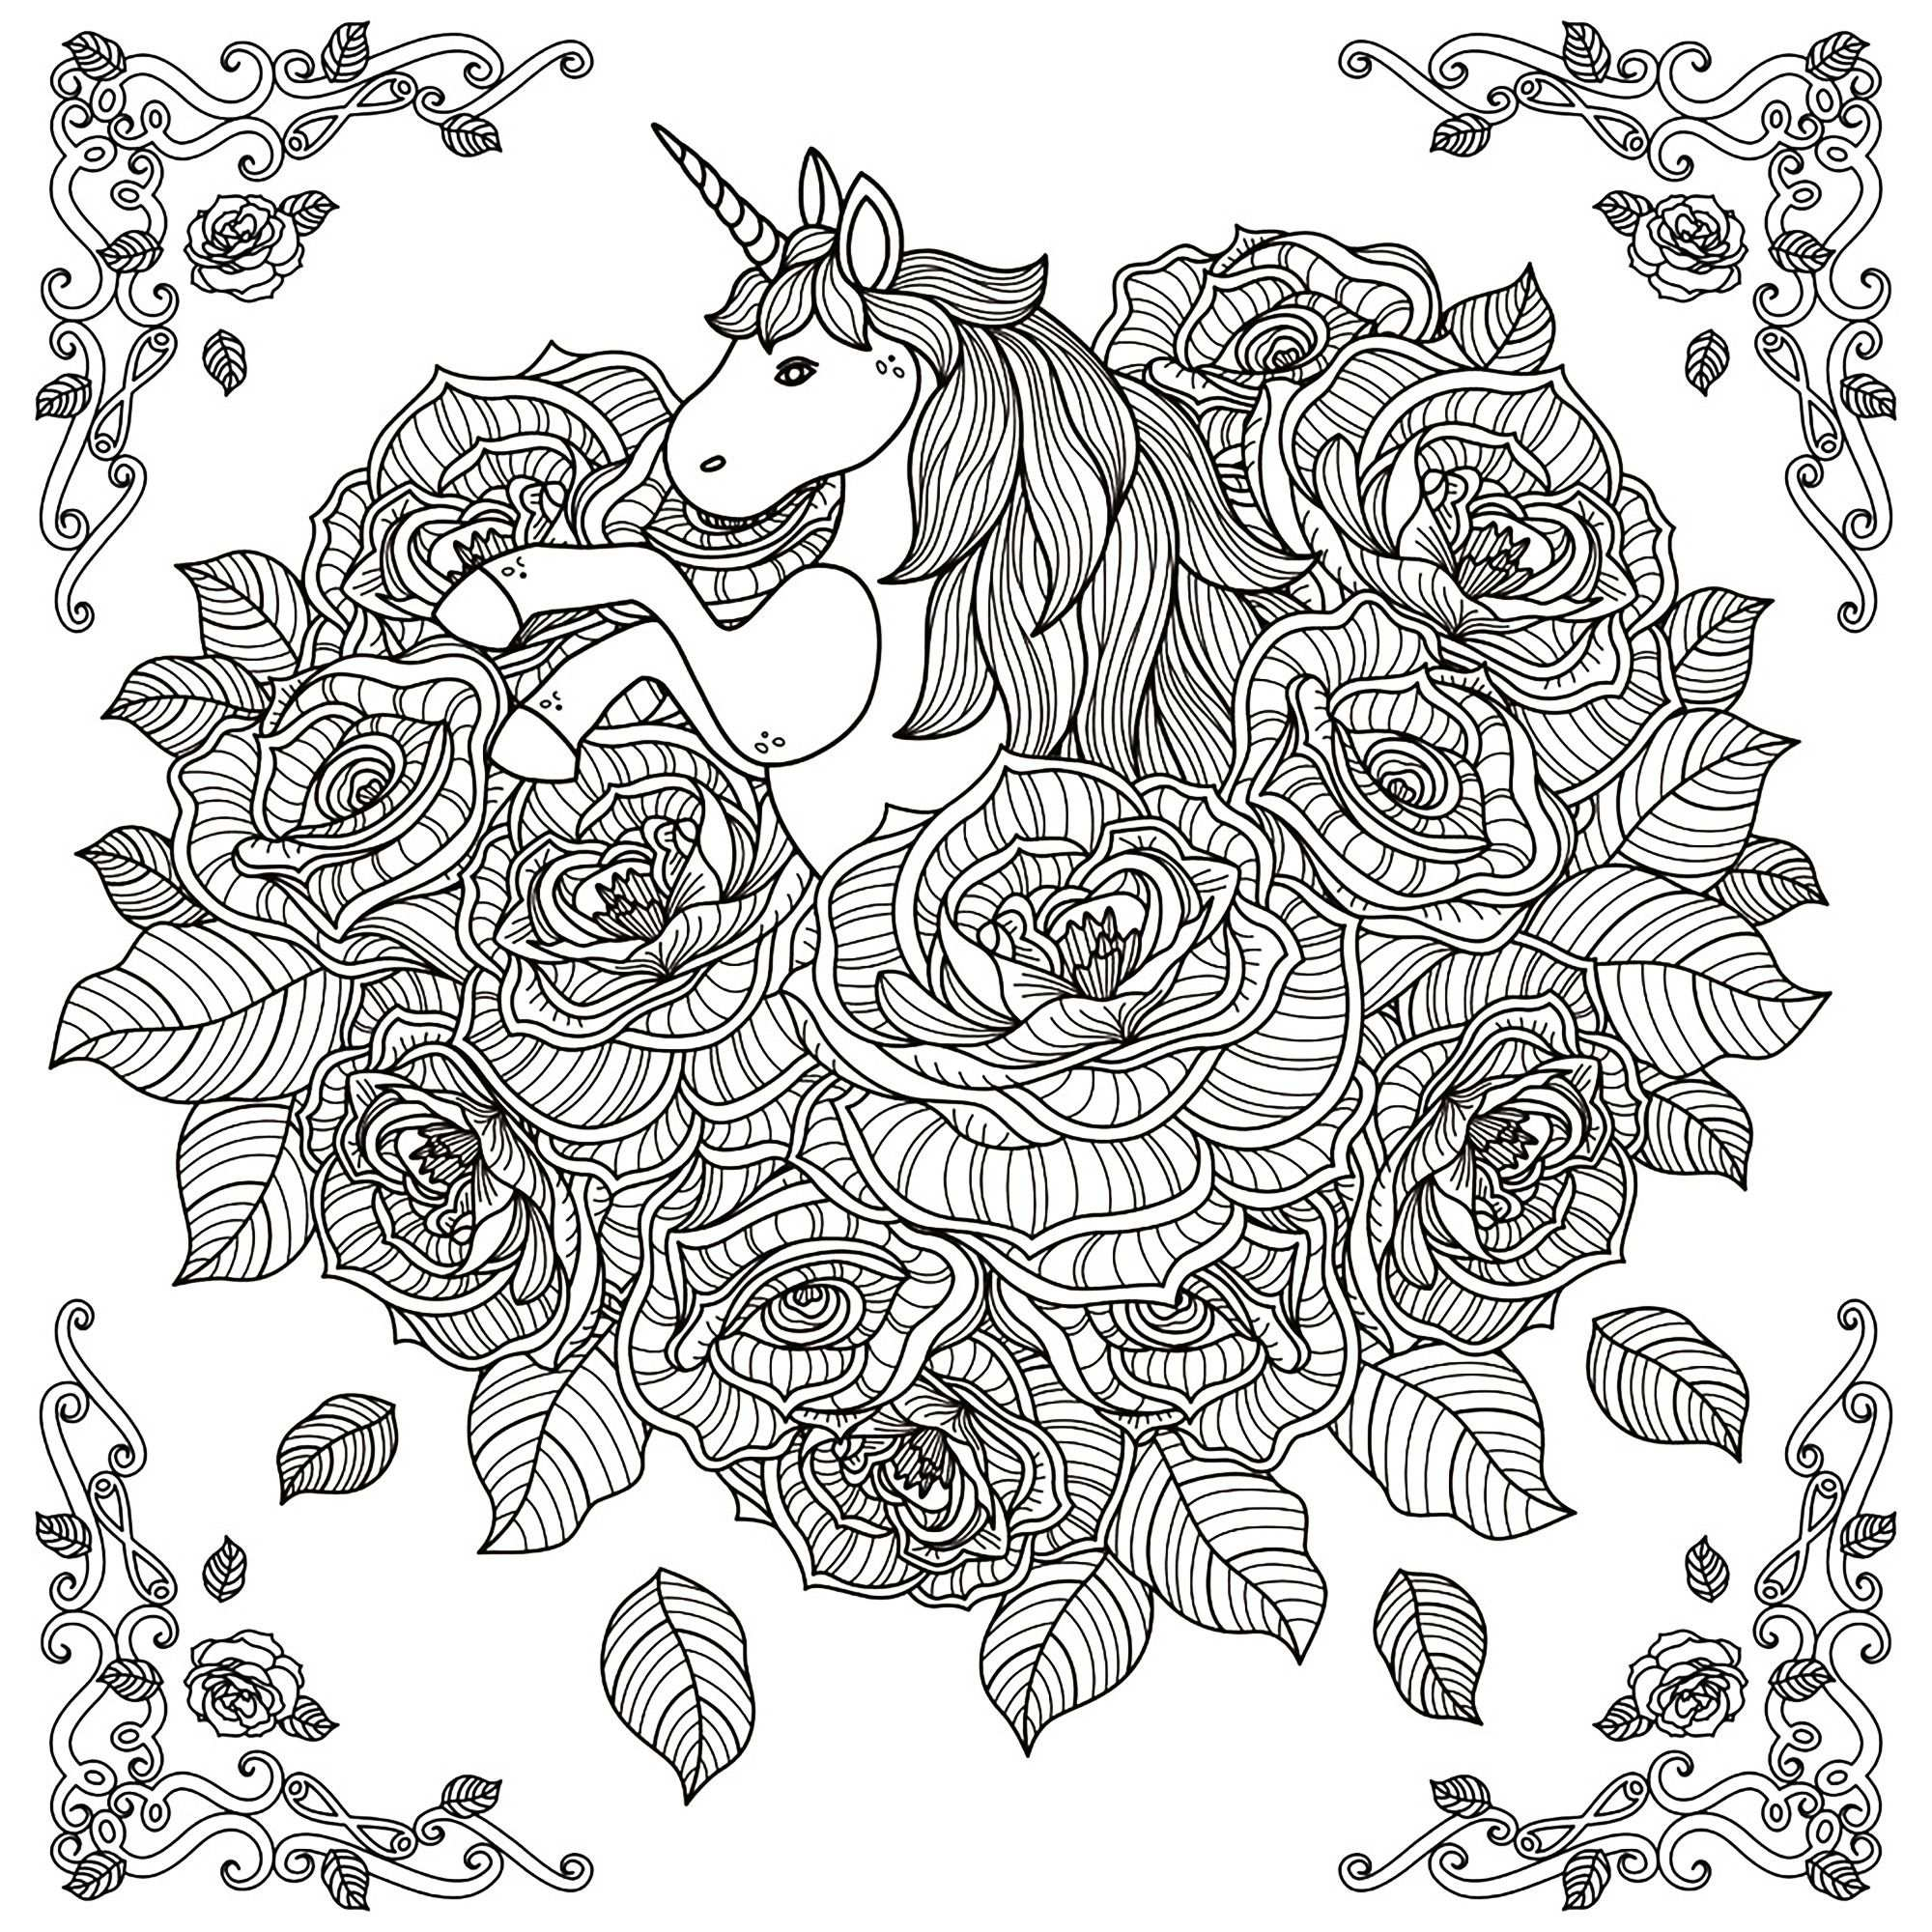 Unicorn Coloring Pages For Adults En 2020 Licorne Coloriage